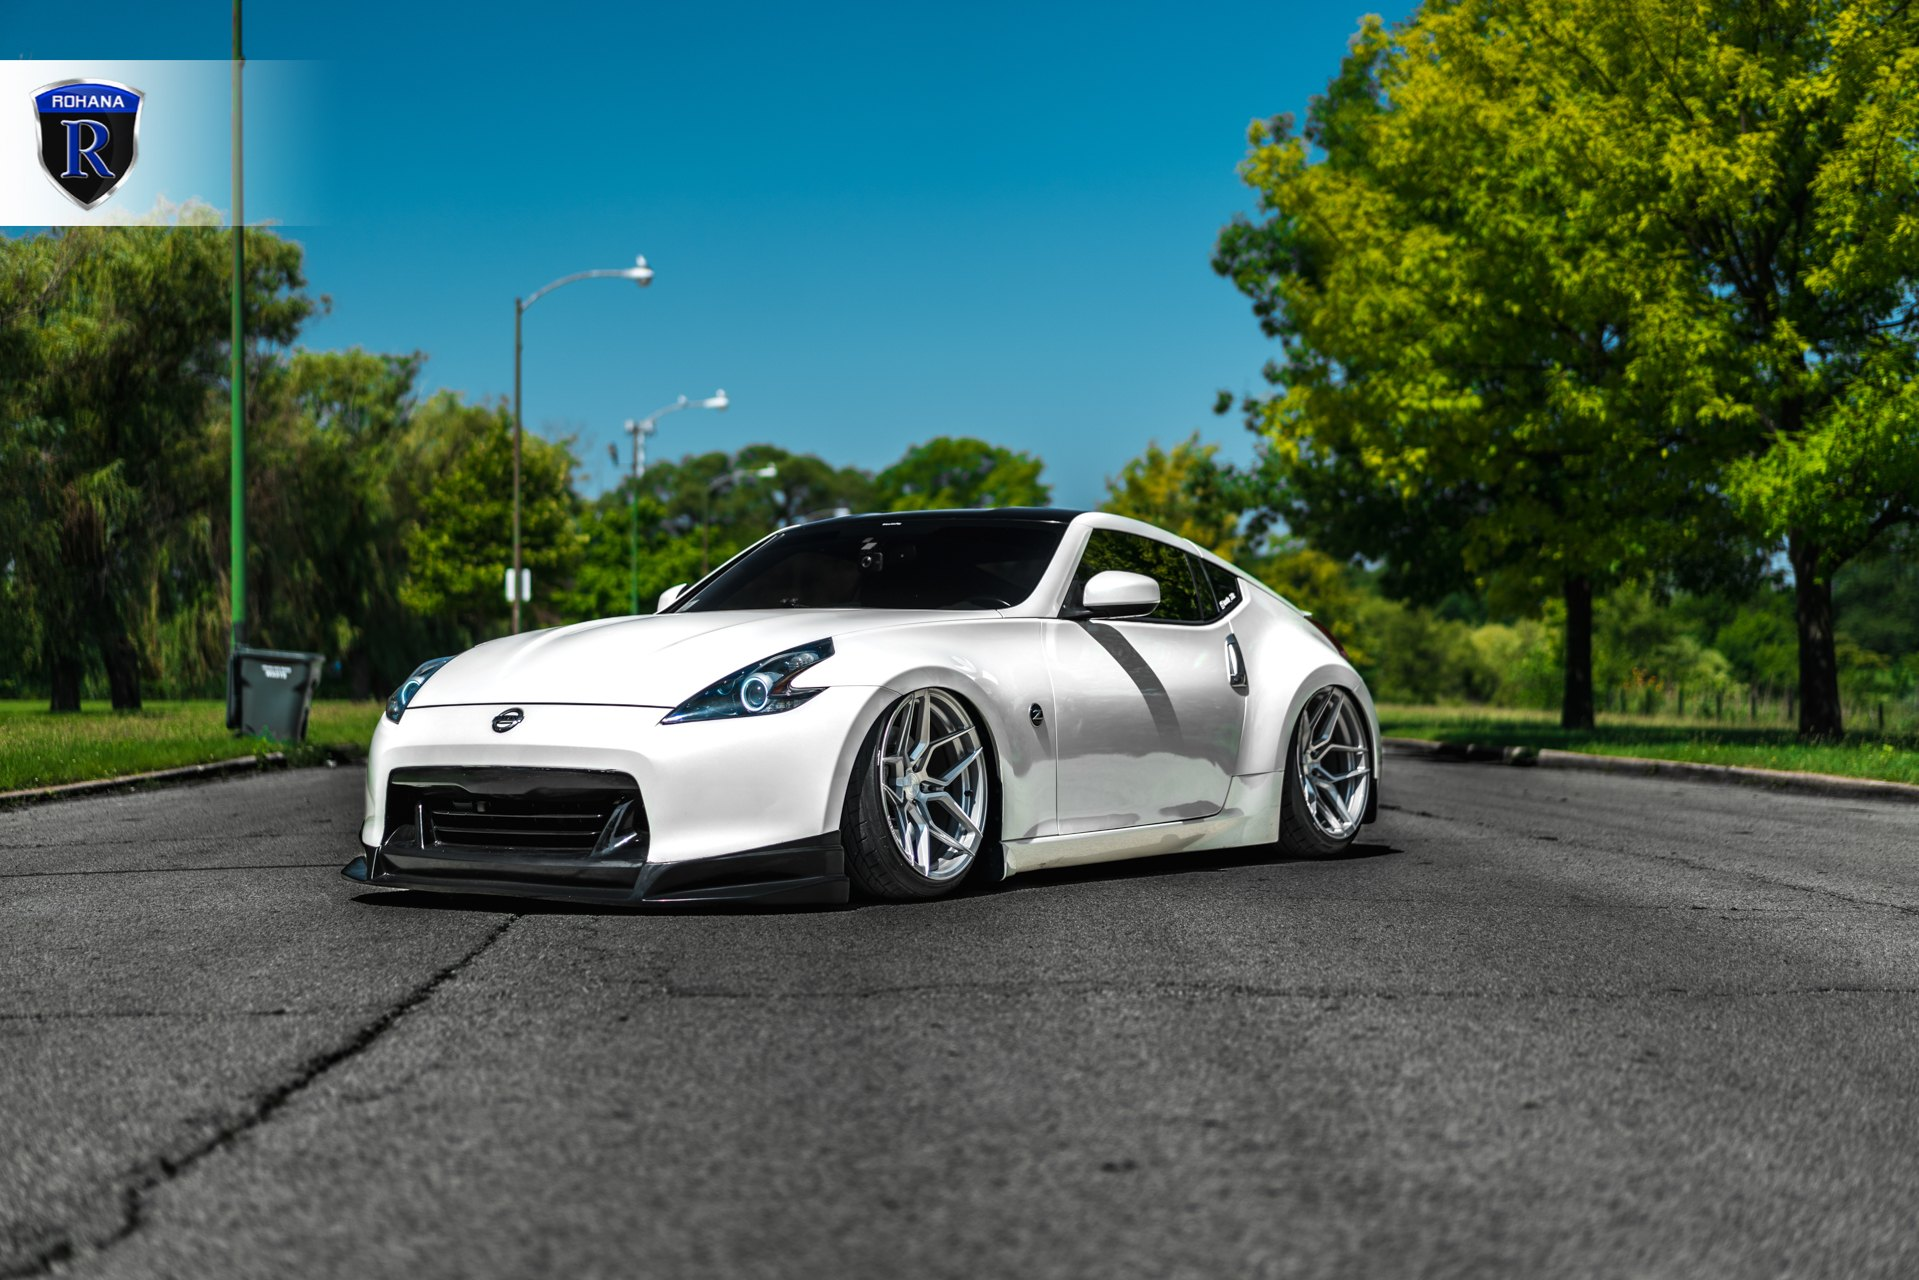 White Lowered Nissan 370Z with Custom Halo Headlights - Photo by Rohana Wheels